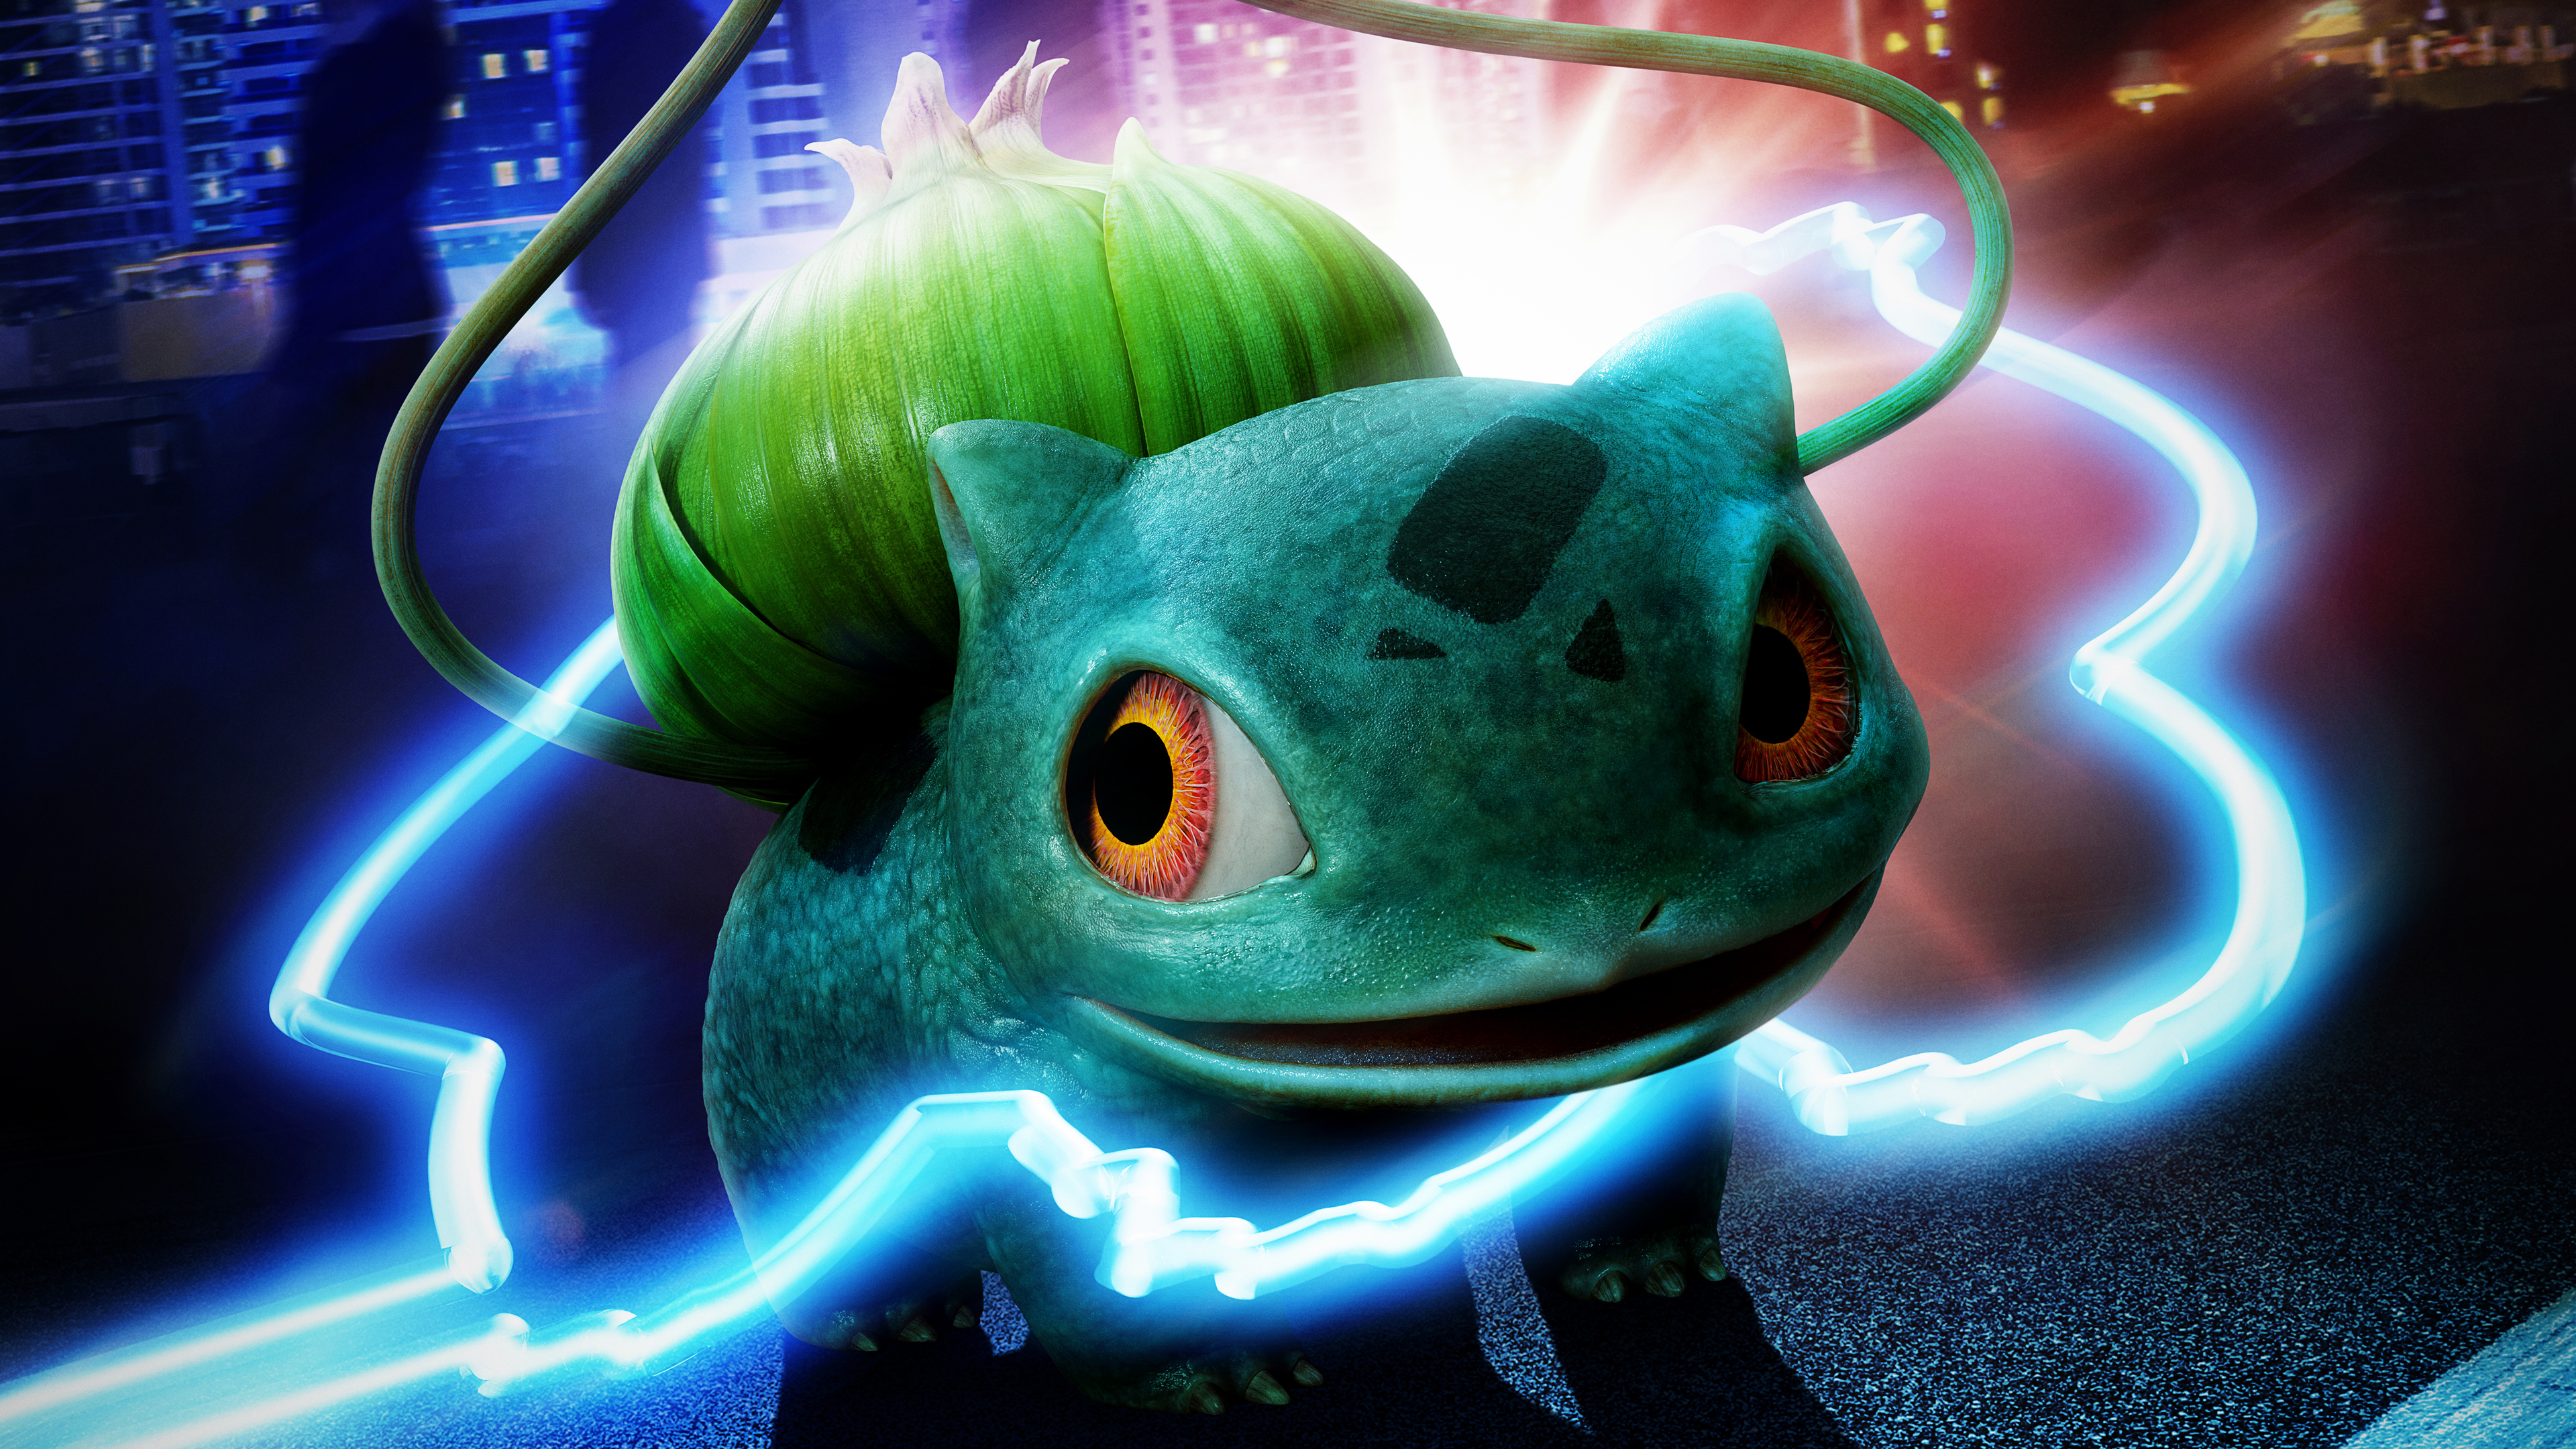 detective pikachu bulbasaur 4k 1560535182 - Detective Pikachu Bulbasaur 4k - pokemon detective pikachu wallpapers, movies wallpapers, hd-wallpapers, detective pikachu movie wallpapers, 4k-wallpapers, 2019 movies wallpapers